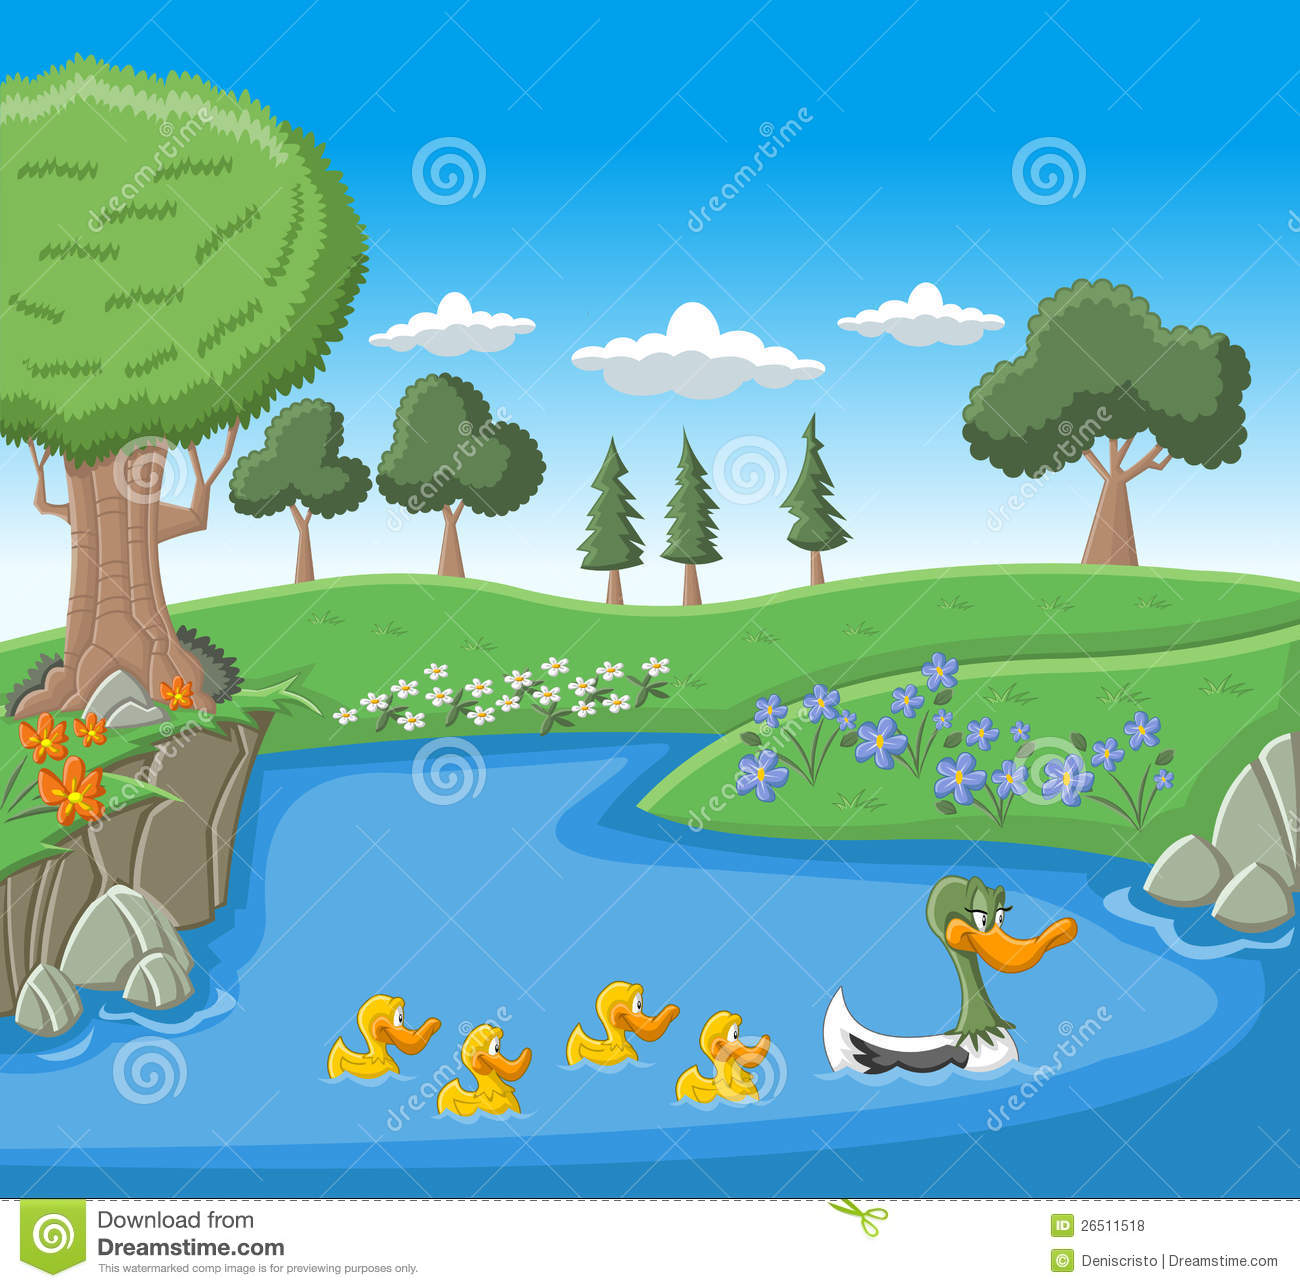 Cartoon lake clipart clipart royalty free stock Lake Images Clip Art | Wallpapers Point clipart royalty free stock